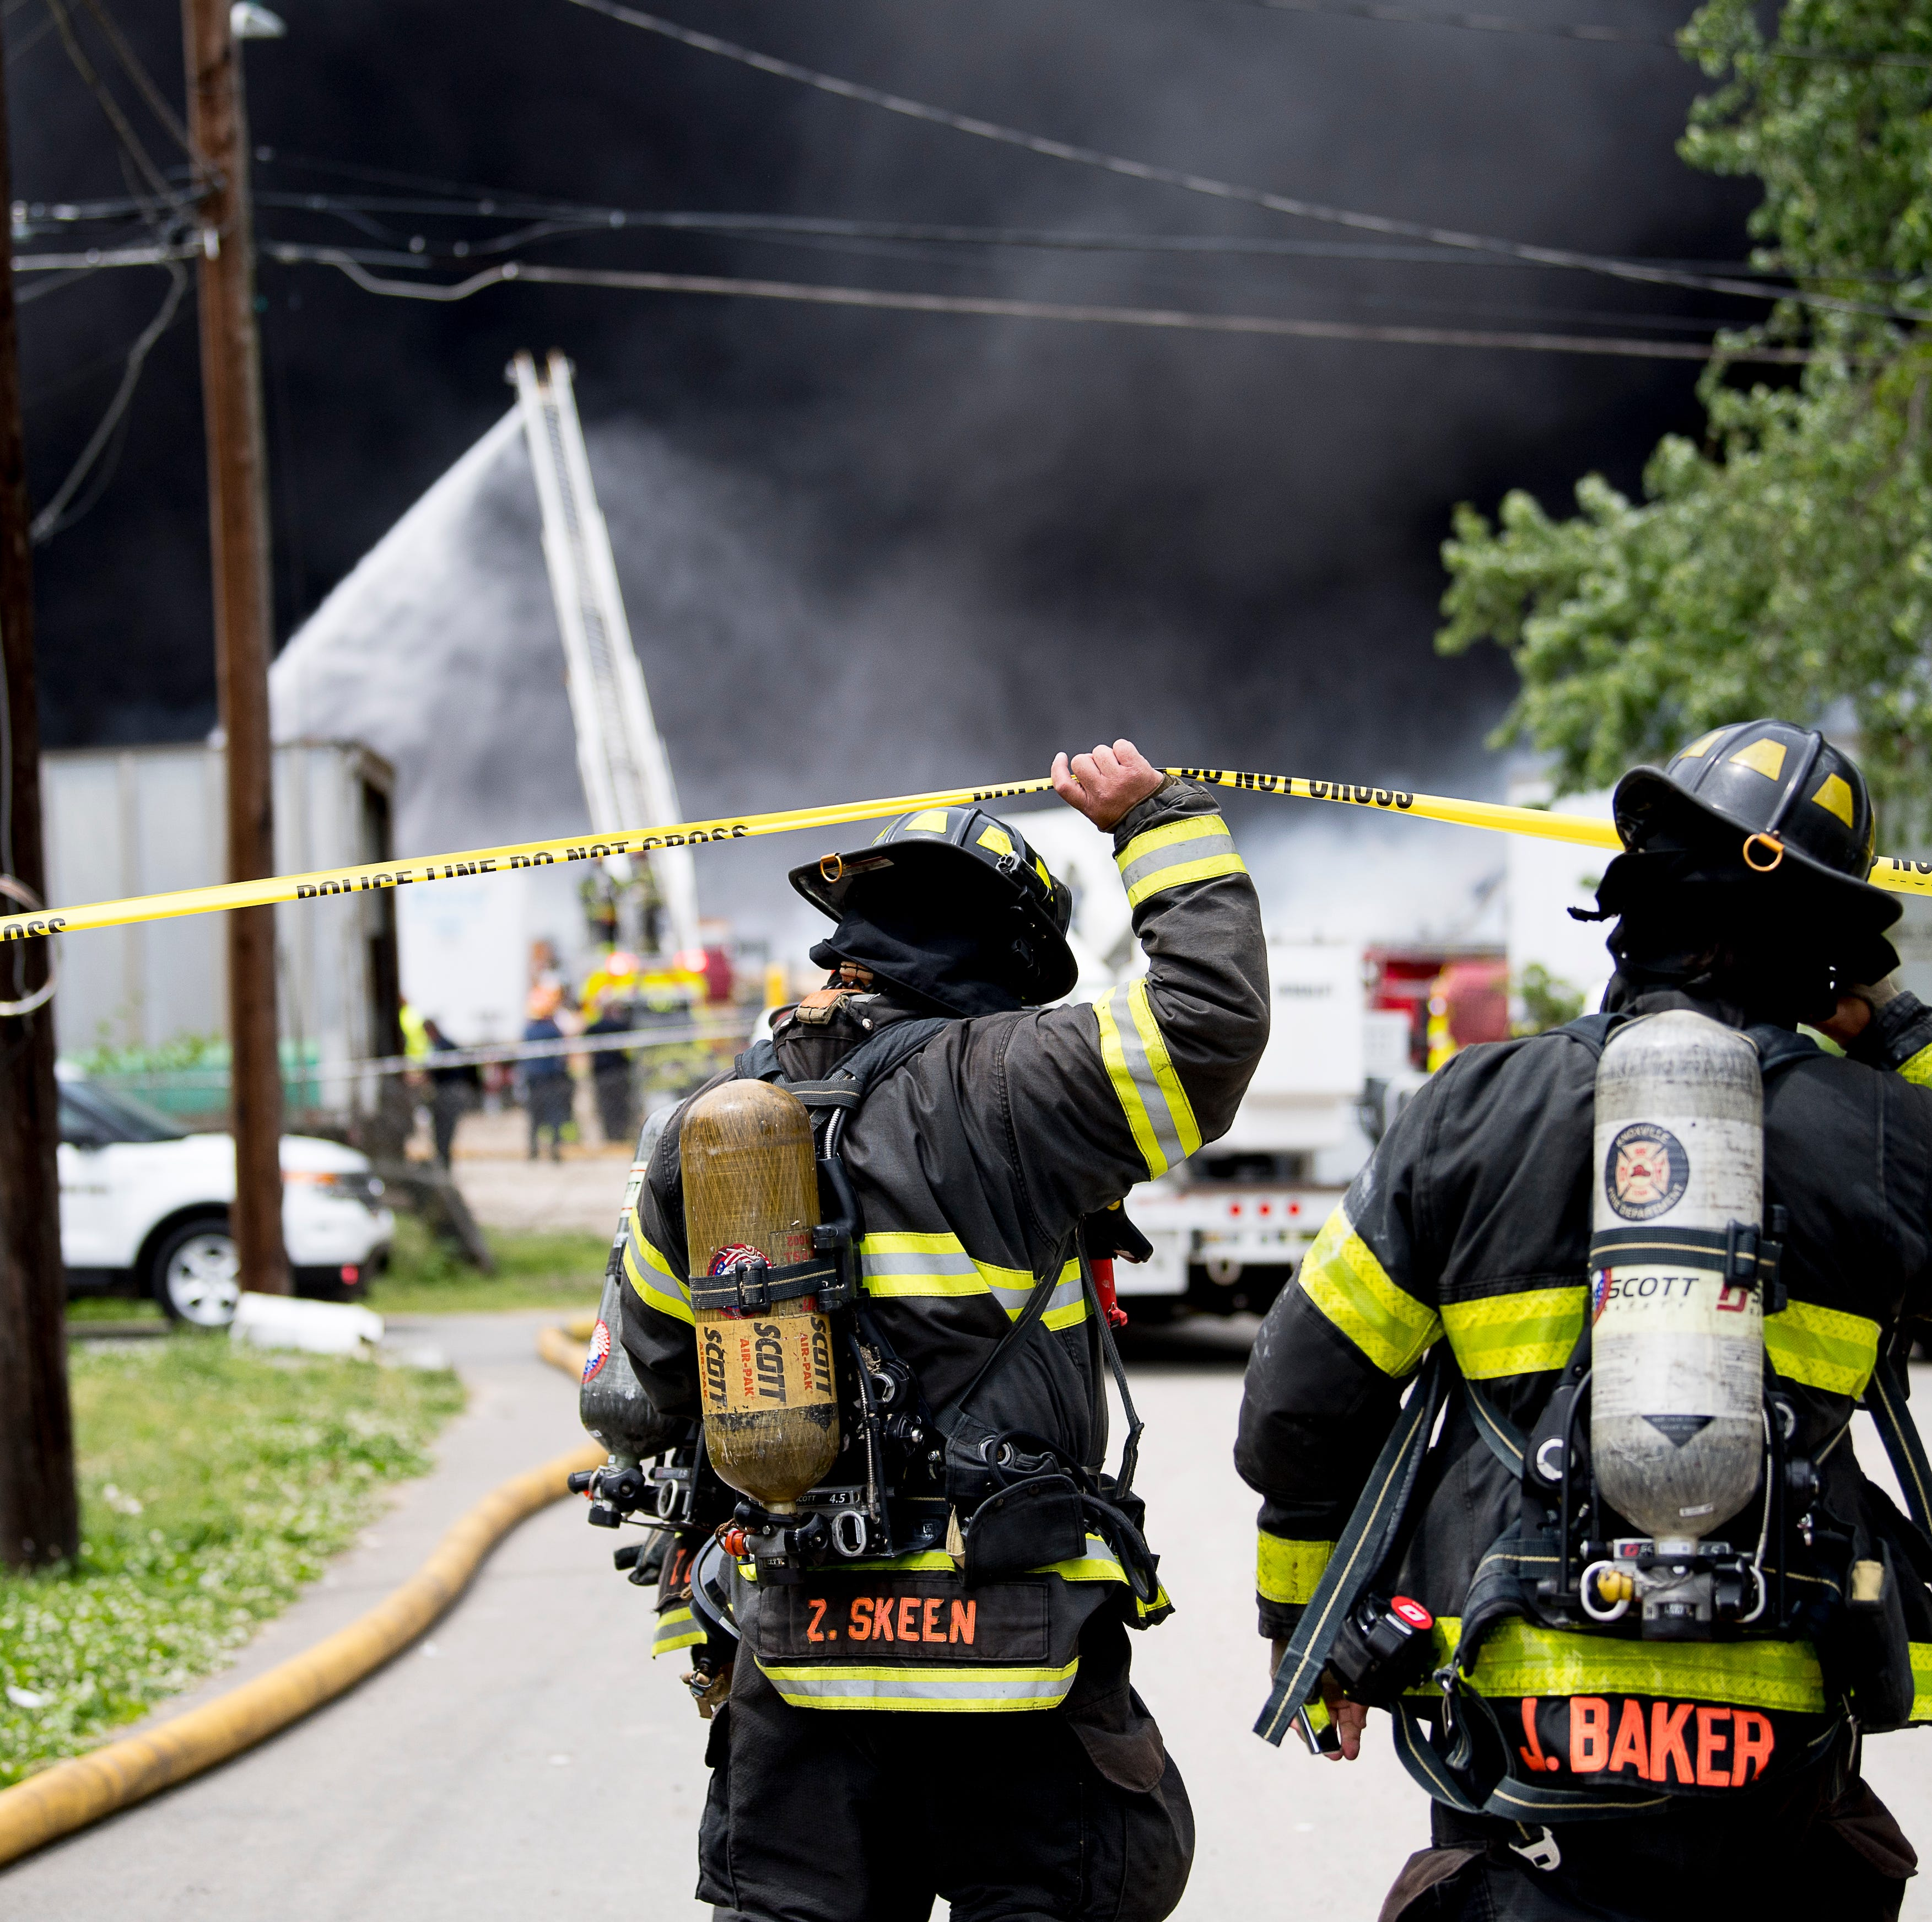 Burned waste facility owed $376K in local taxes before fire this week